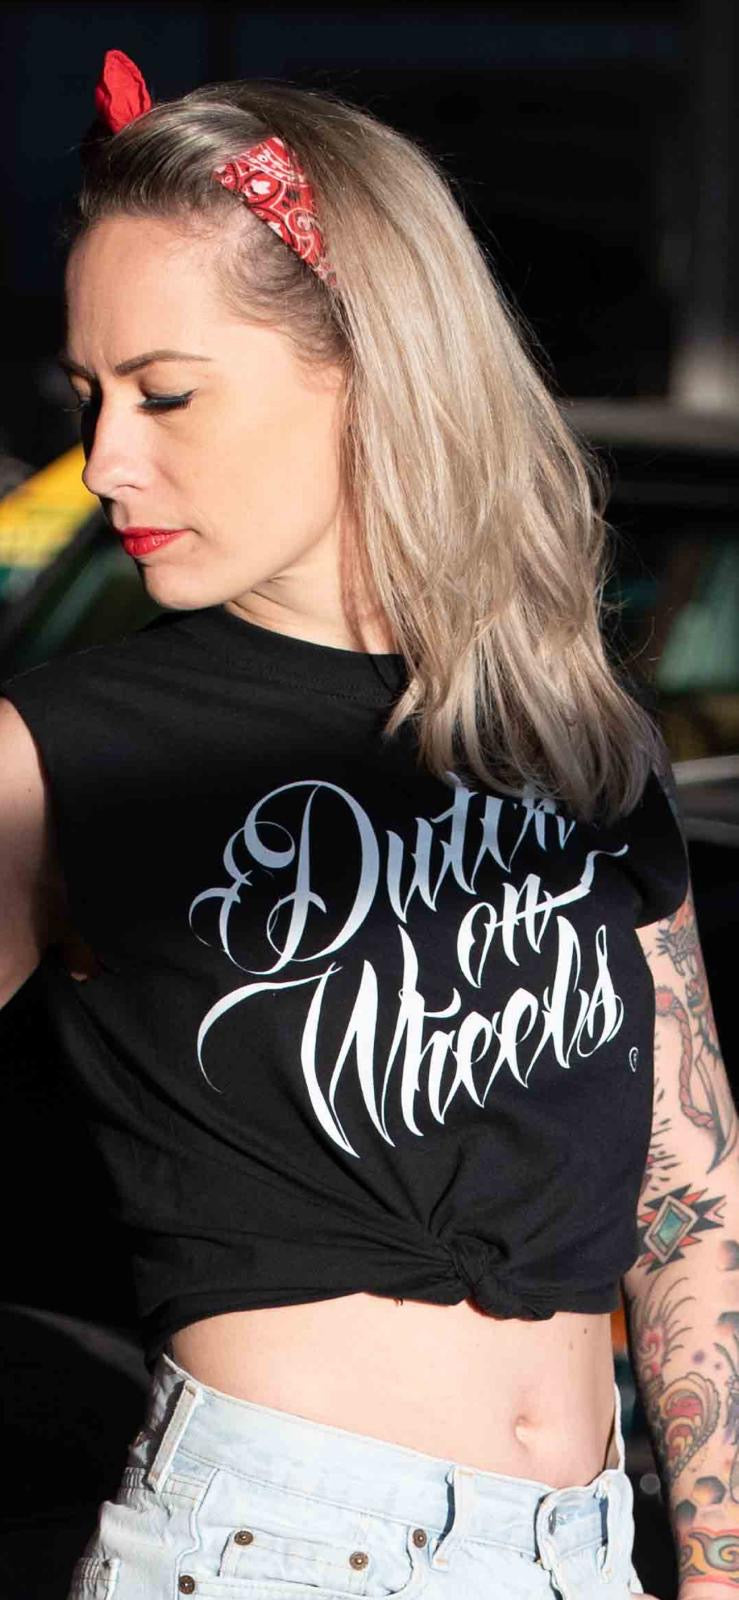 Dutch on Wheels Logo Tshirt,  UNISEX - Dutch on Wheels